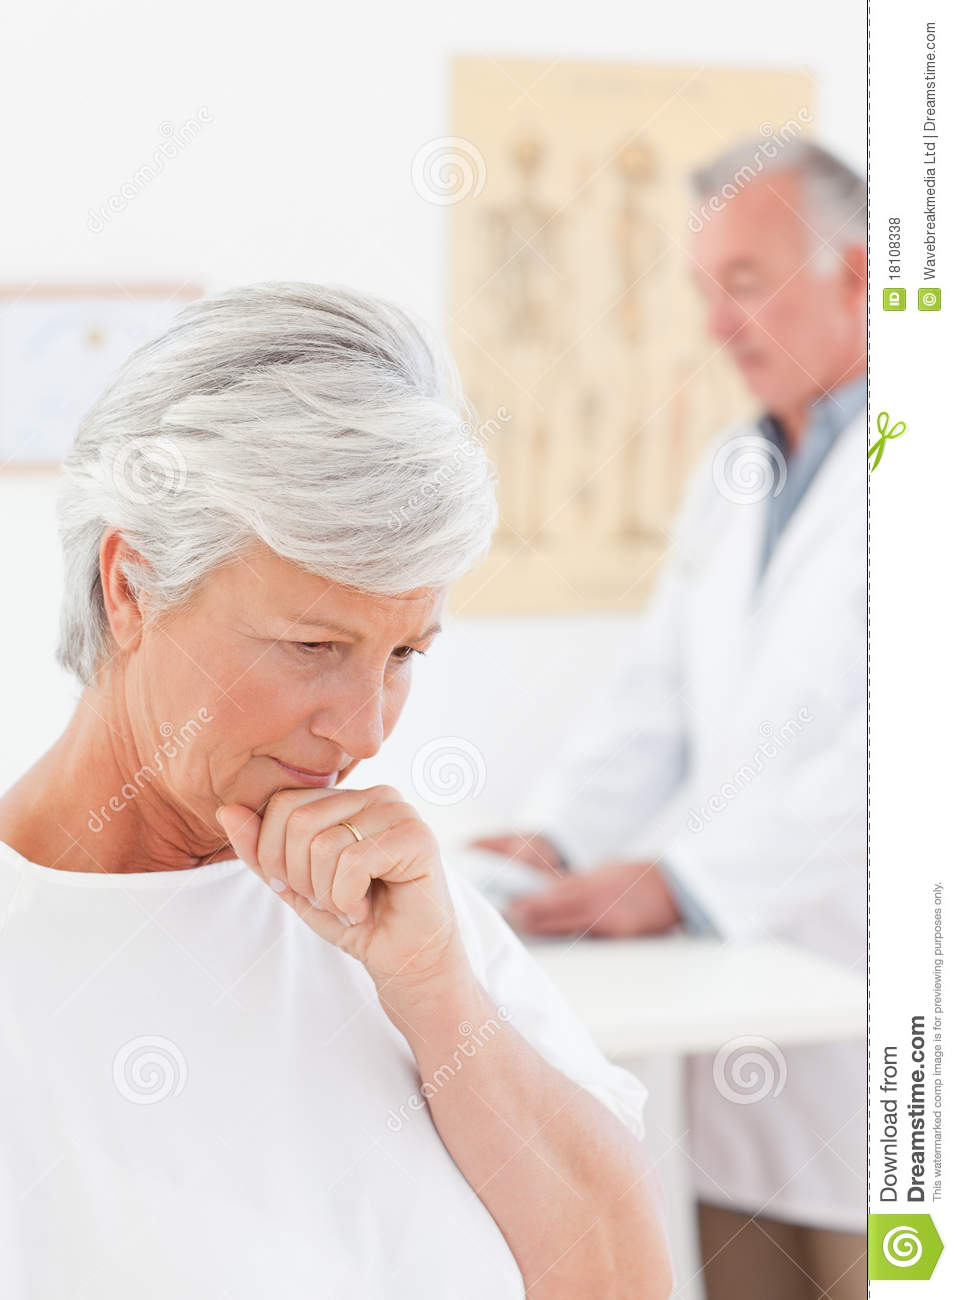 Sick Patient Pic : Sick Patient With Her Doctor Royalty Free Stock Photos - Image ...